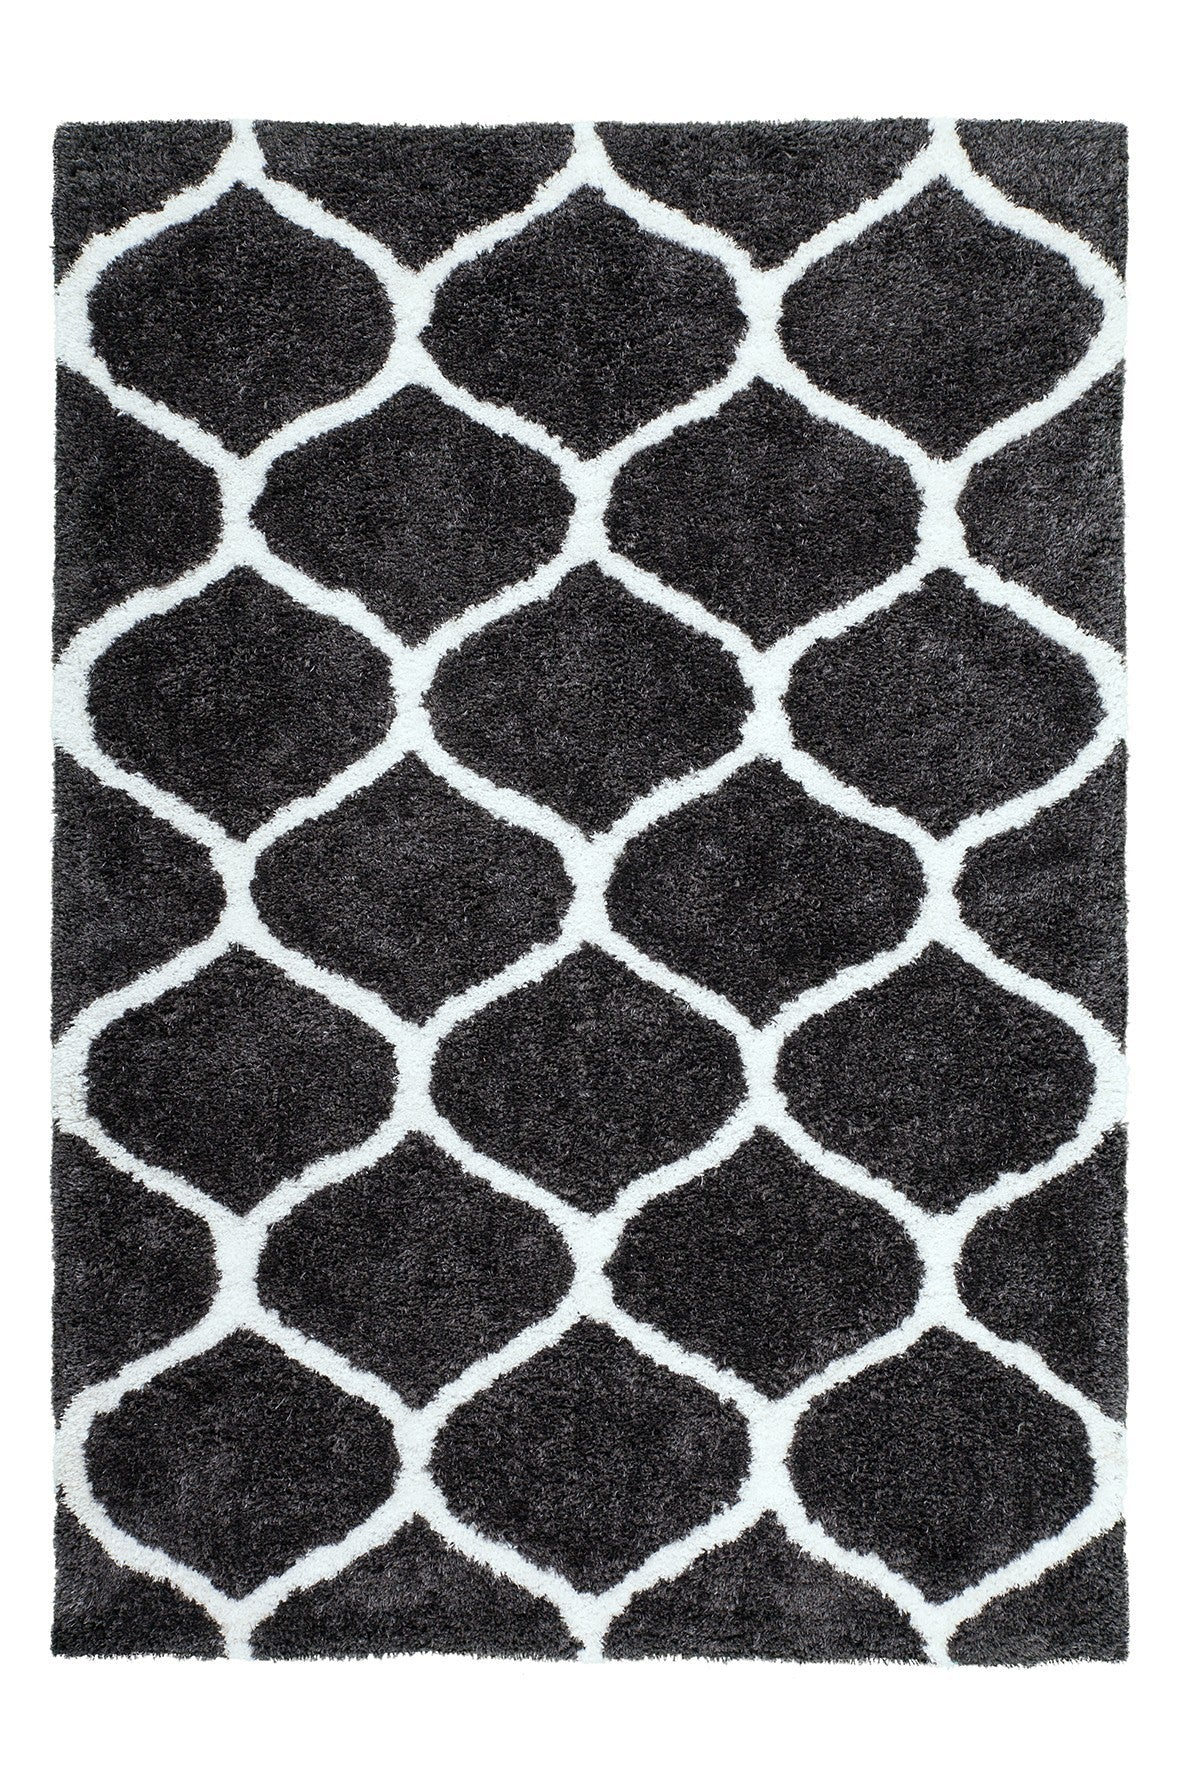 Grace 802 Graphite Moroccan Style Shaggy Rug - Lalee Designer Rugs